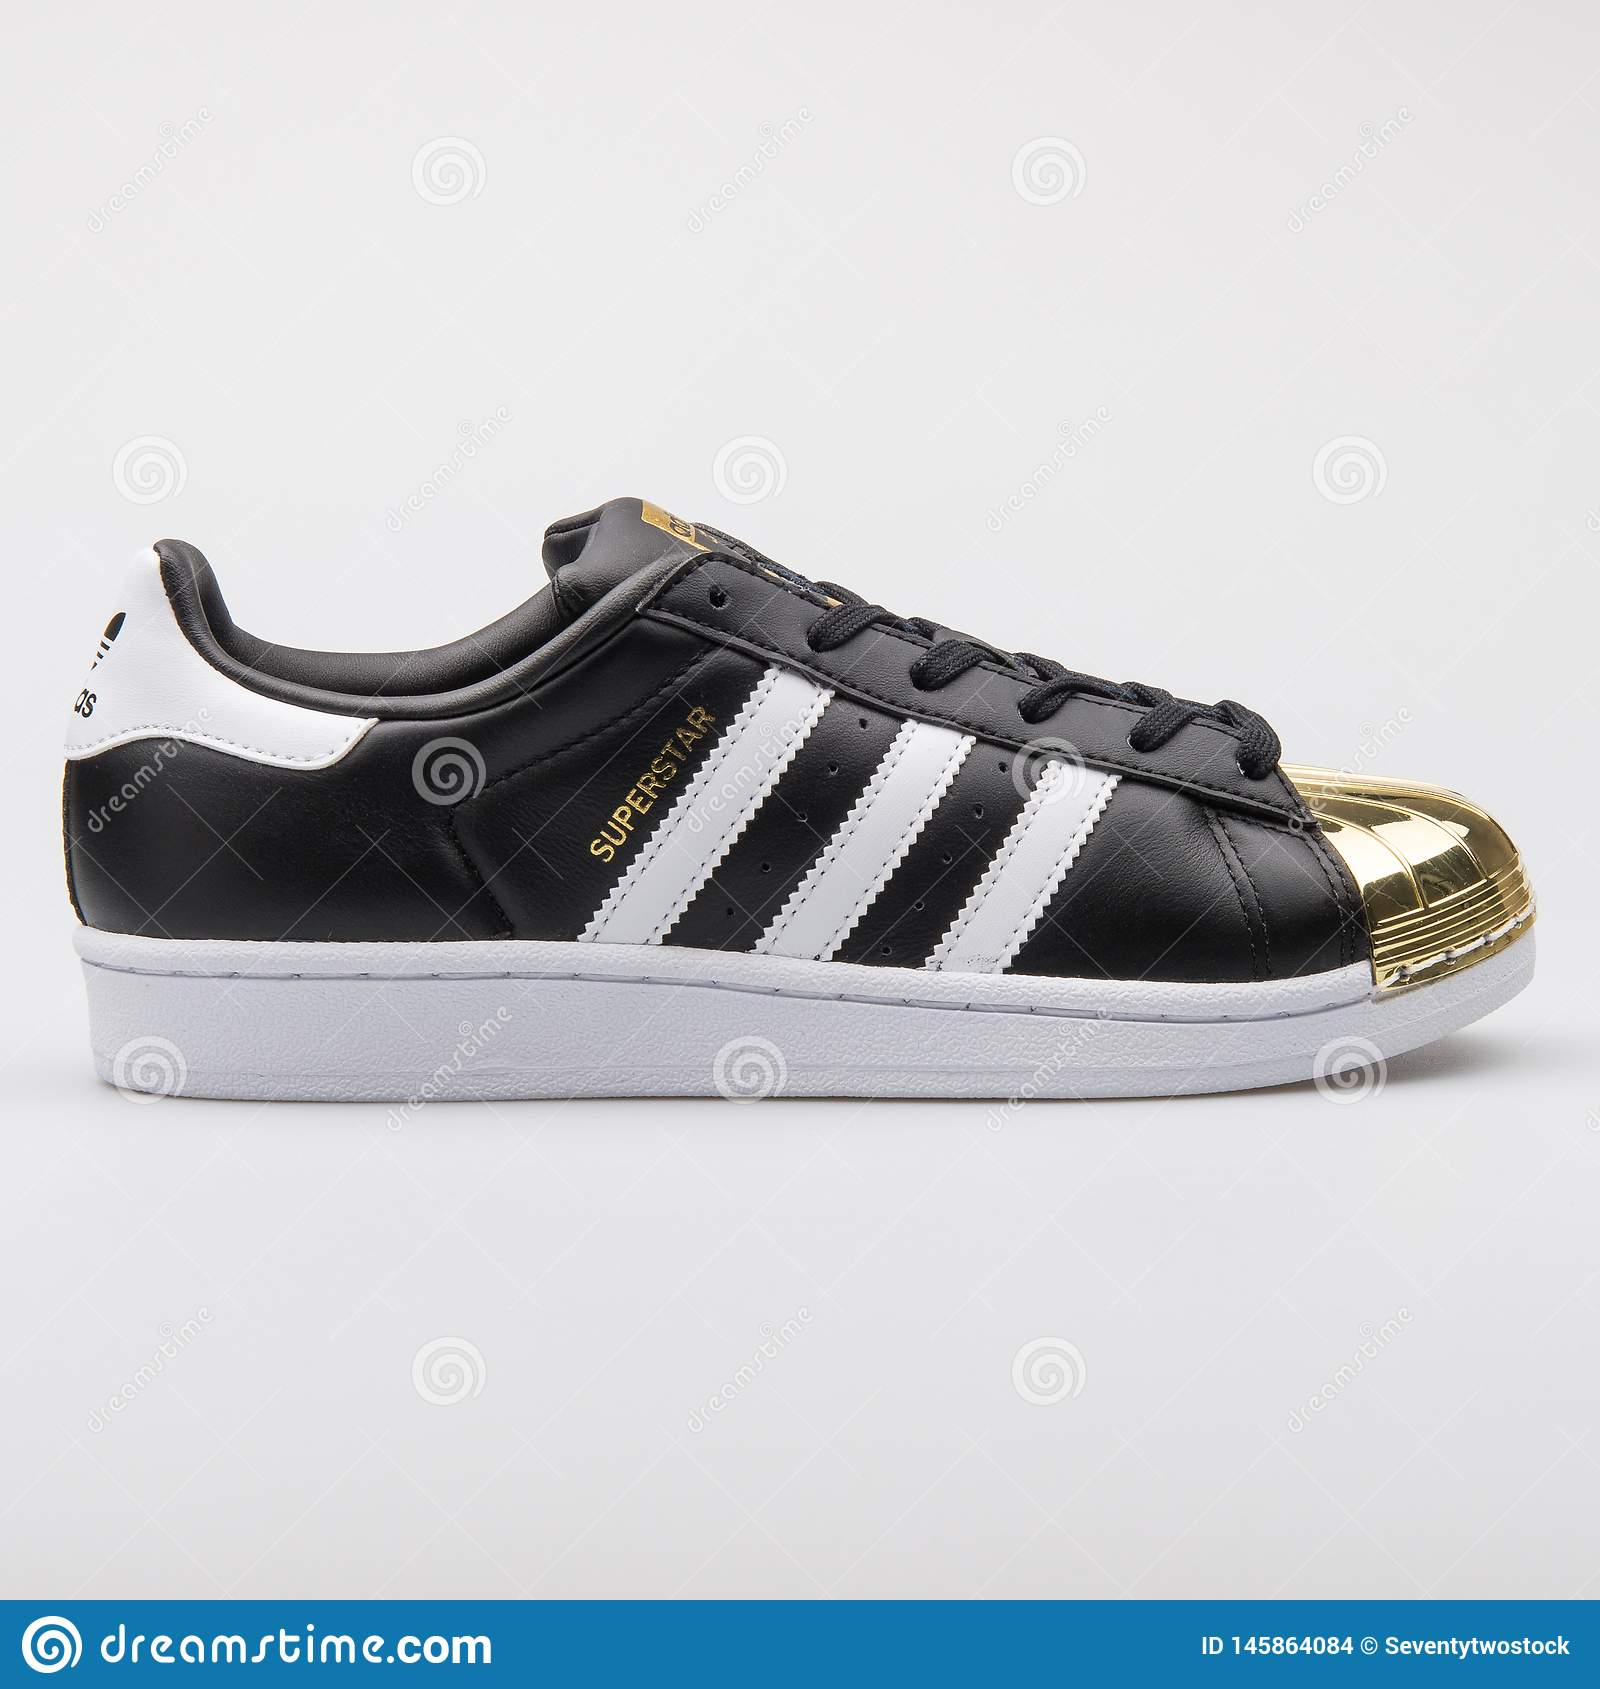 98c91189 Adidas Superstar Metal Toe Black And Gold Sneaker Editorial Stock ...